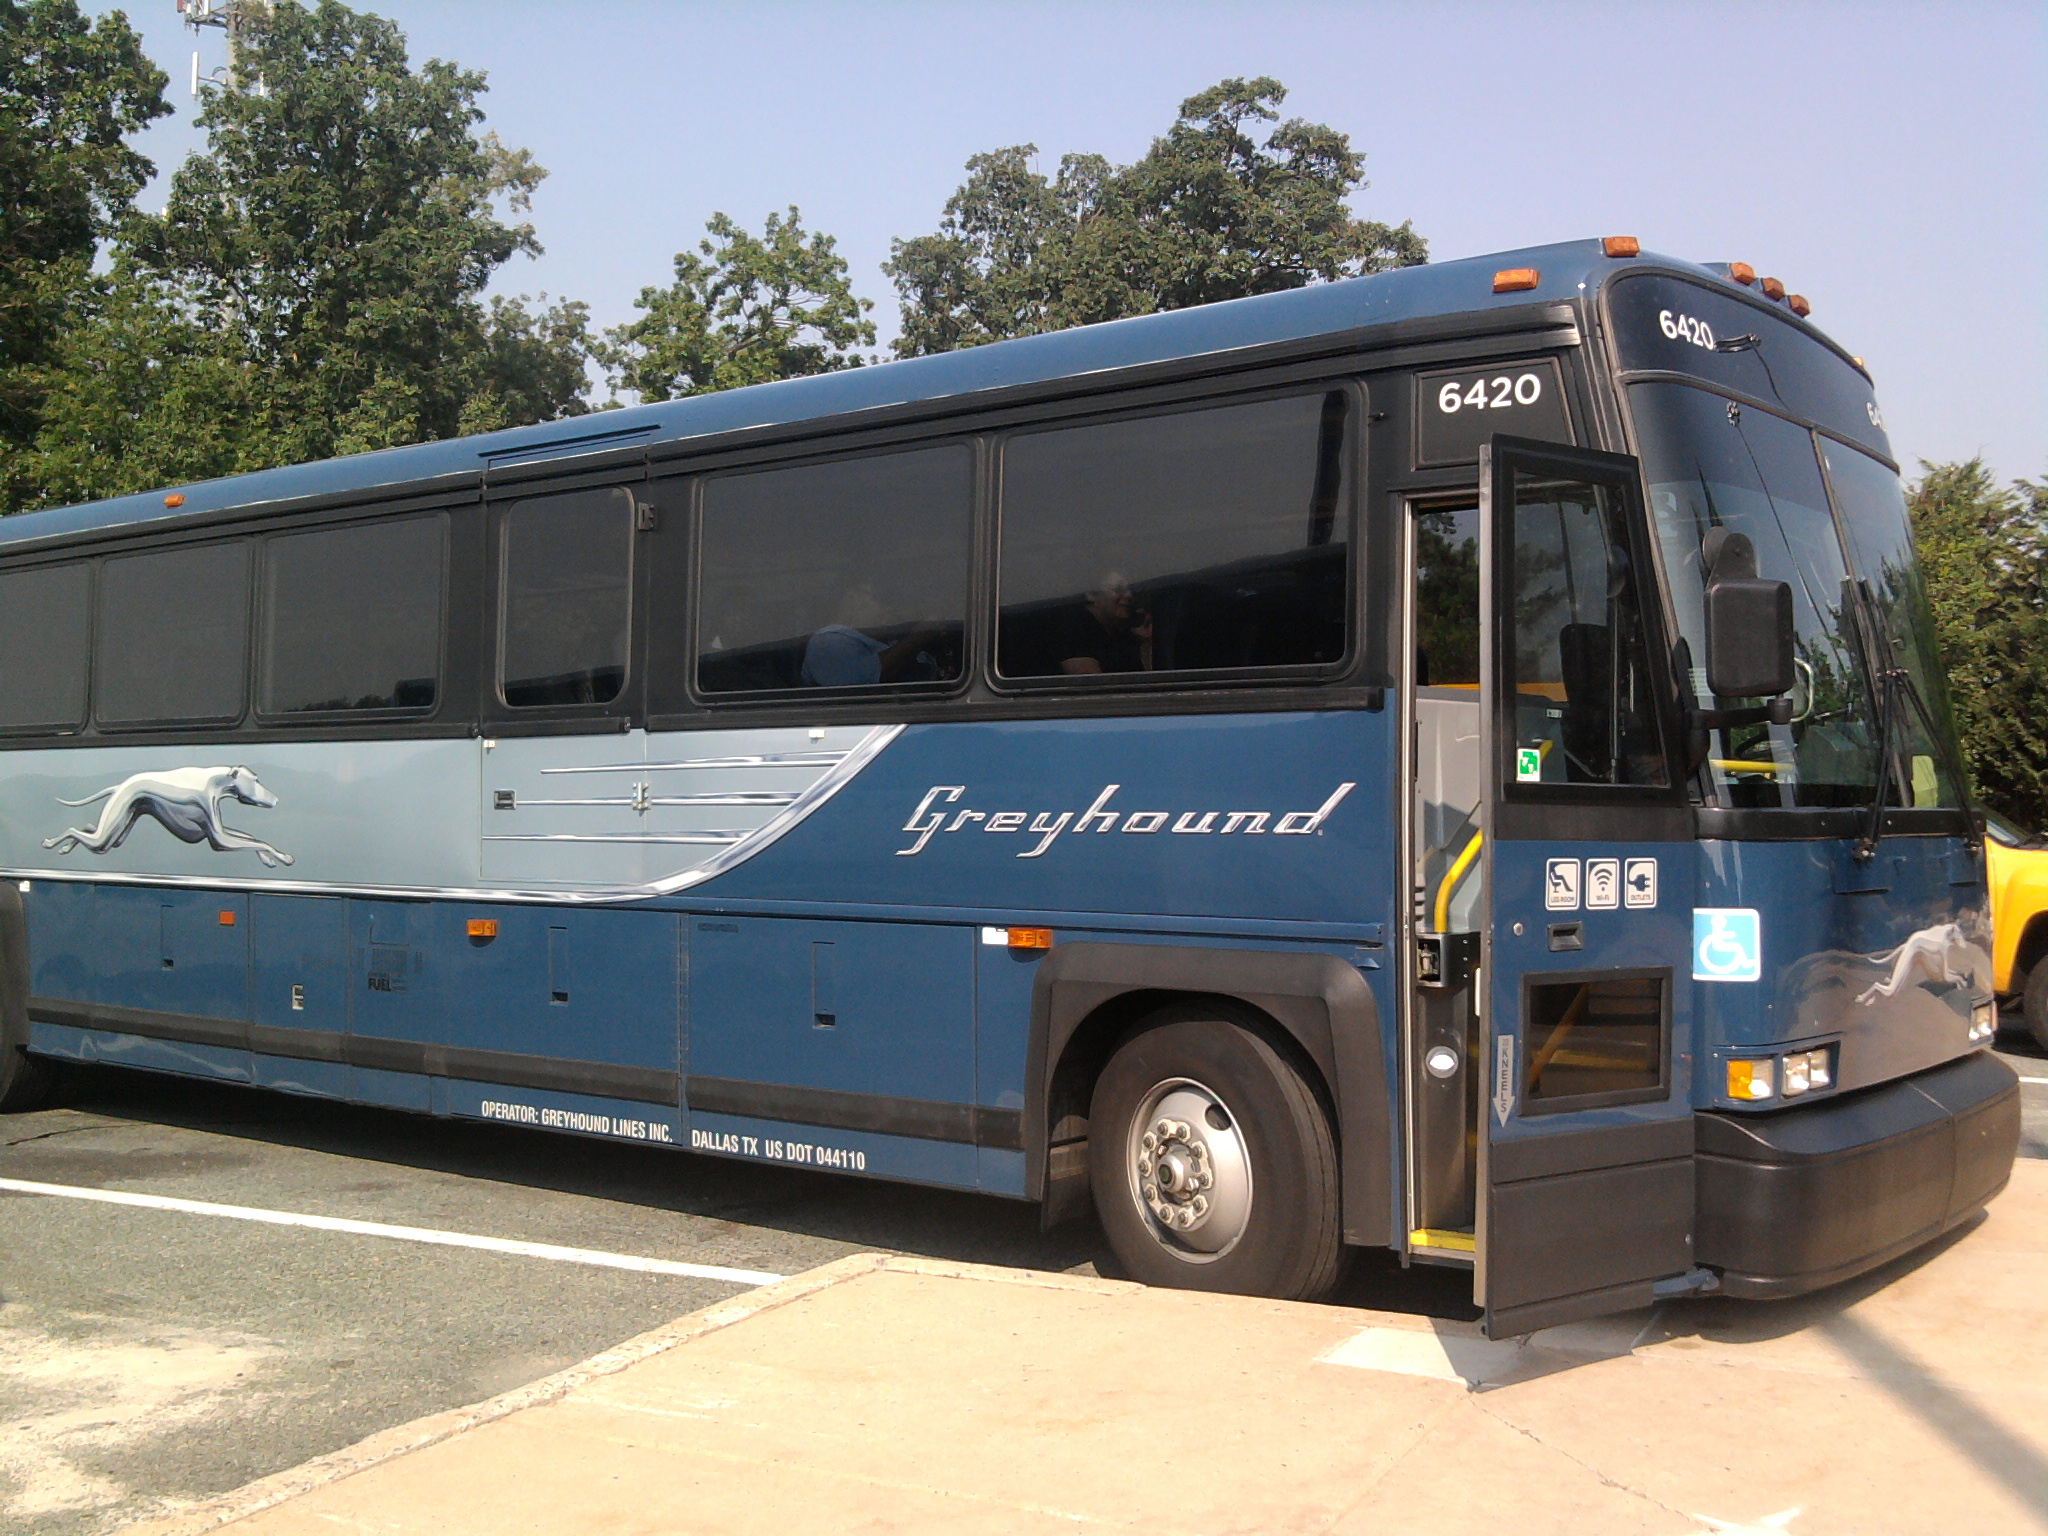 File:Greyhound bus on the way to Washington-1.jpg - Wikimedia Commons